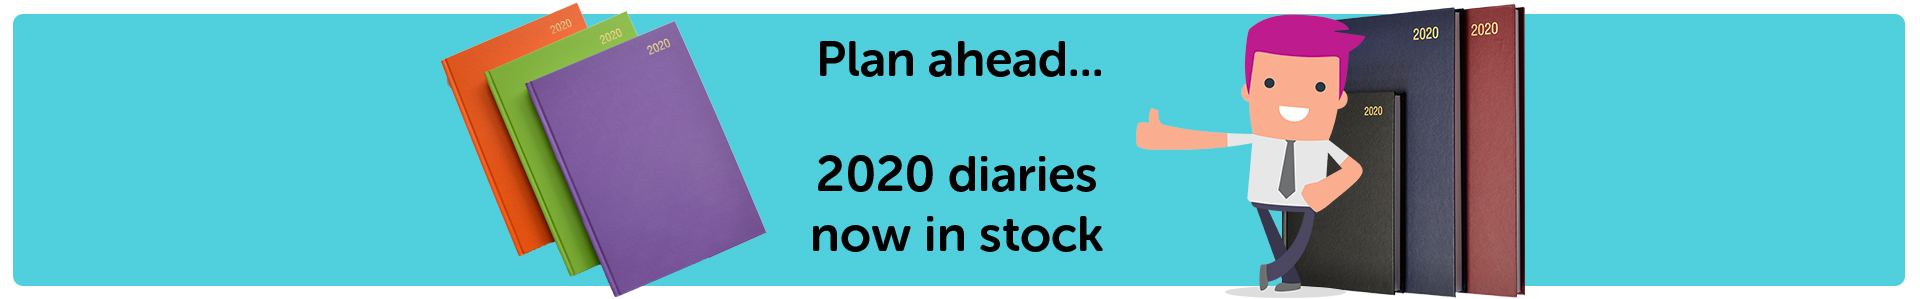 2020 diaries in orange, lime, mauve, black, blue and red